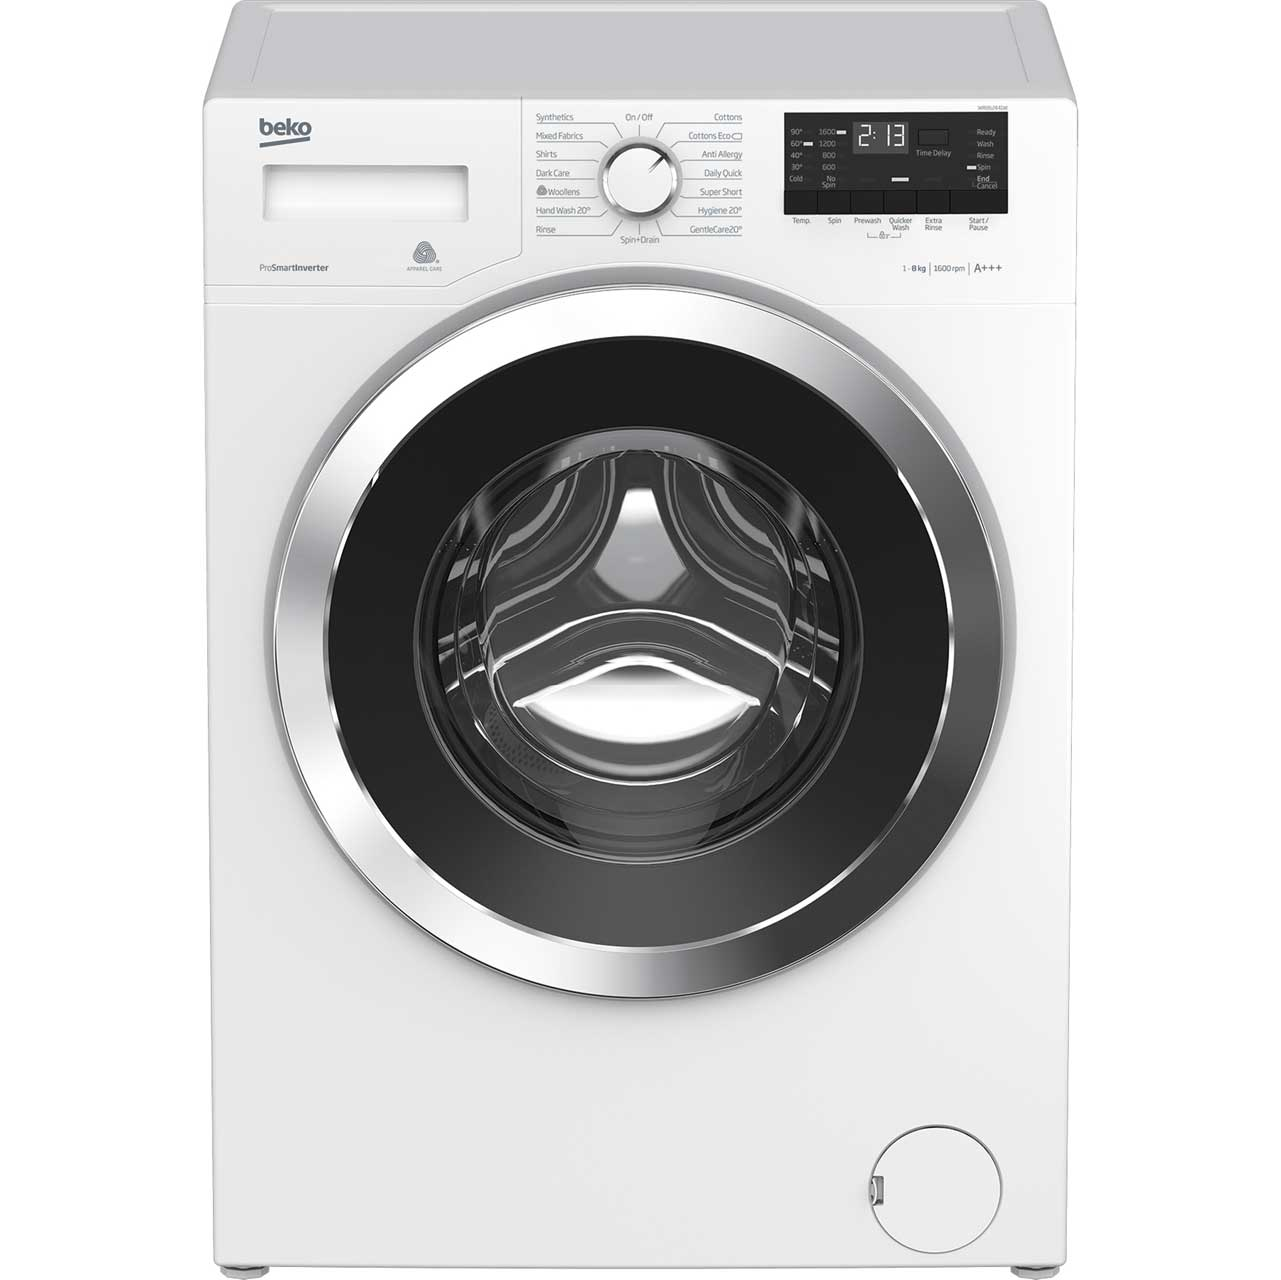 Beko WR862441W Free Standing Washing Machine in White